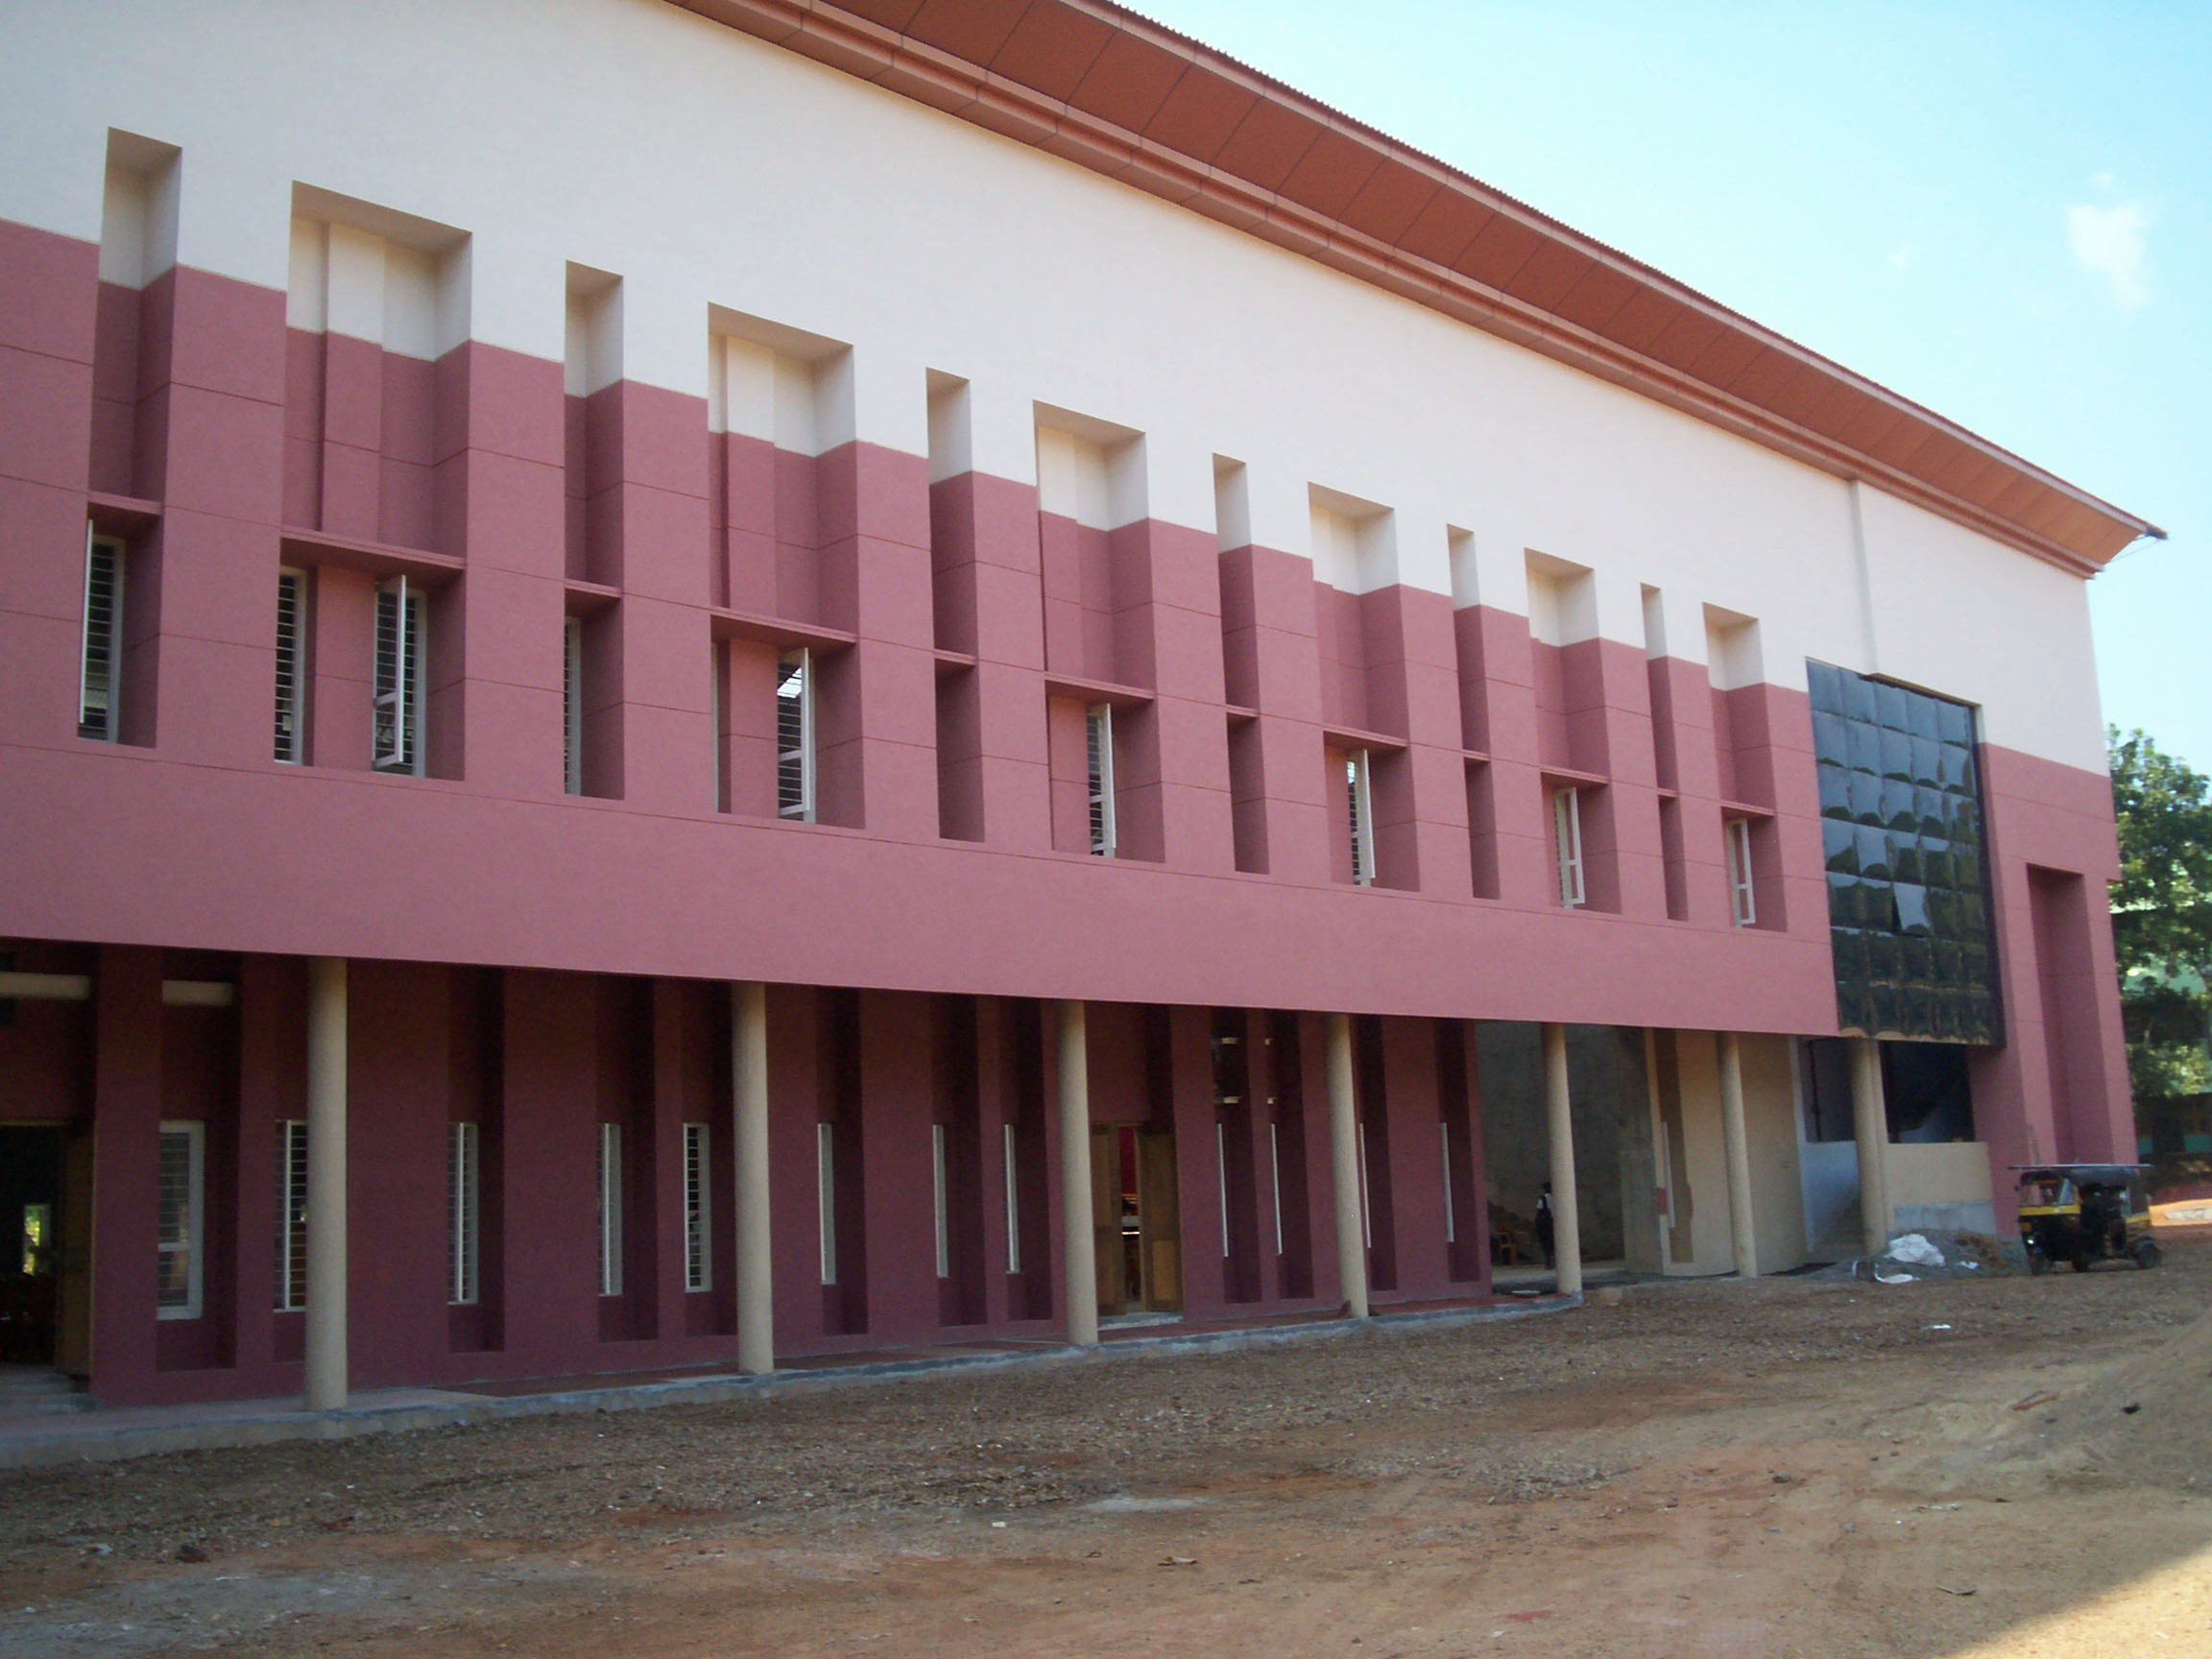 The new auditorium of Loyola School - opened 2008